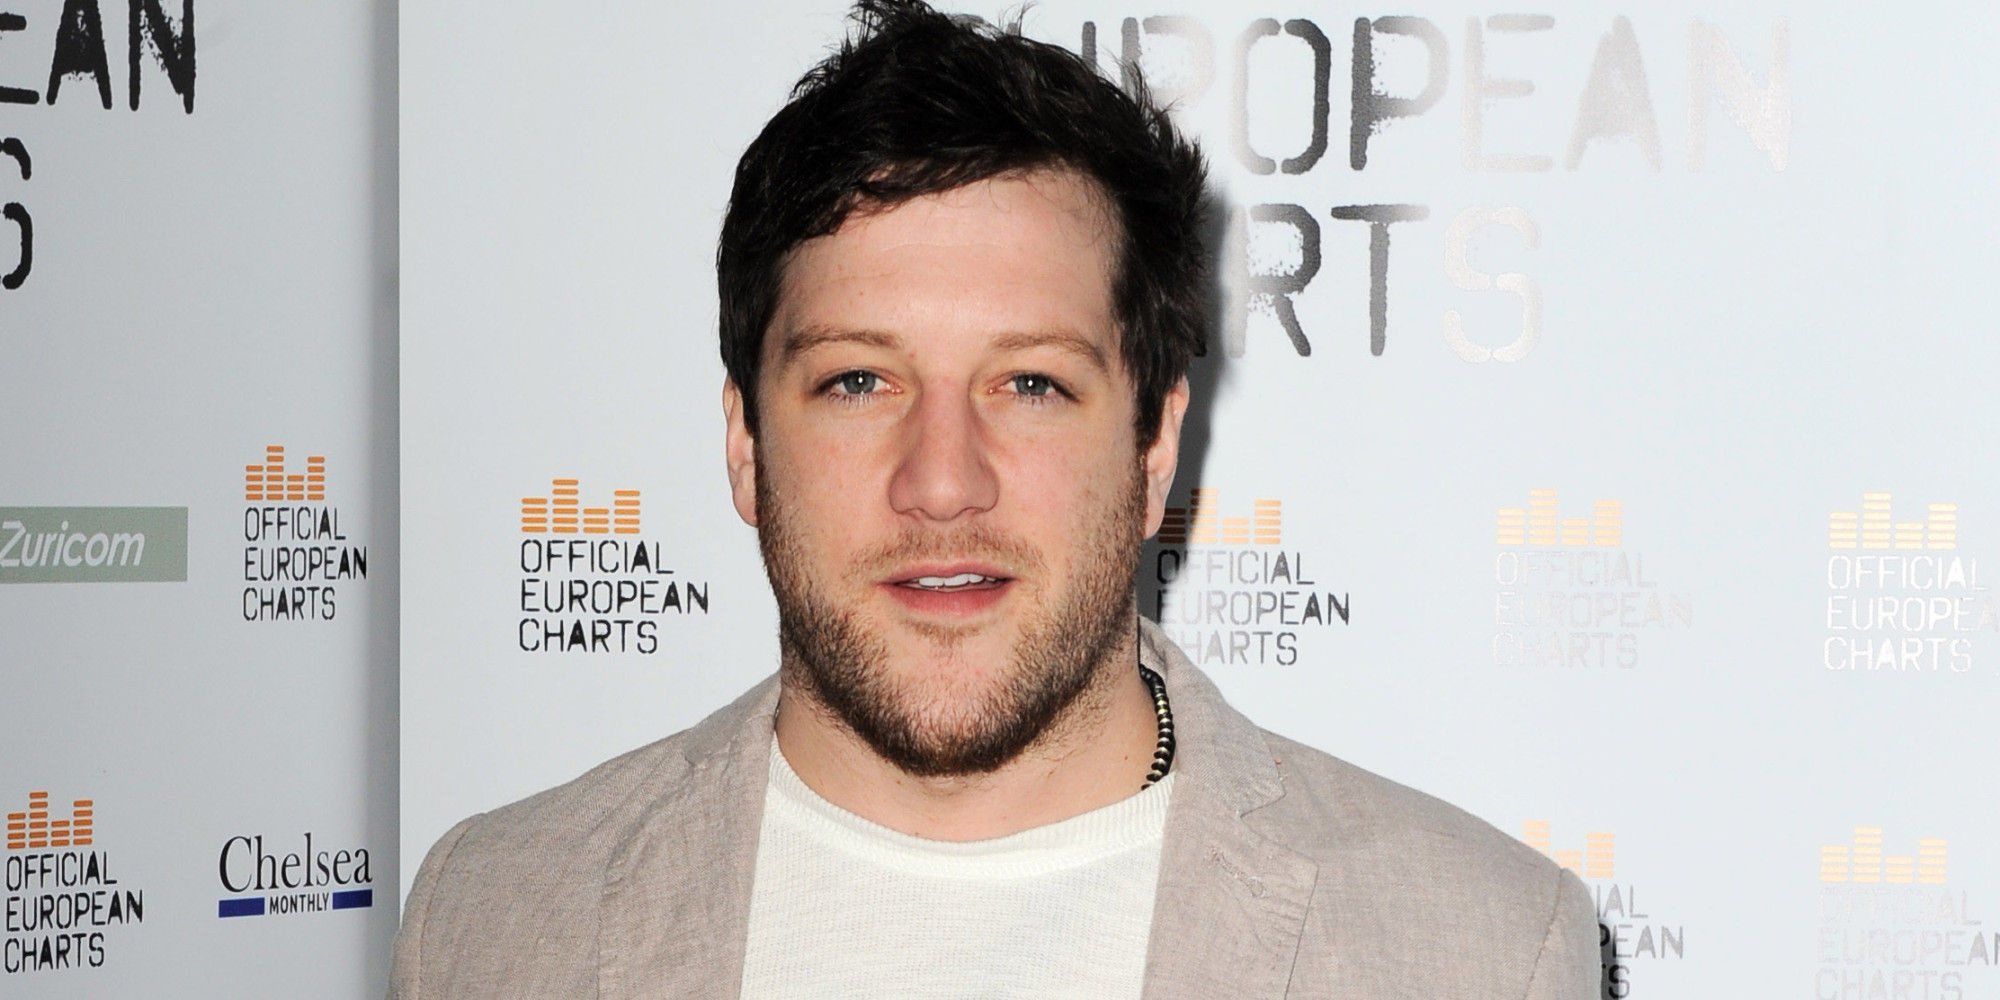 The 34-year old son of father (?) and mother(?), 173 cm tall Matt Cardle in 2017 photo